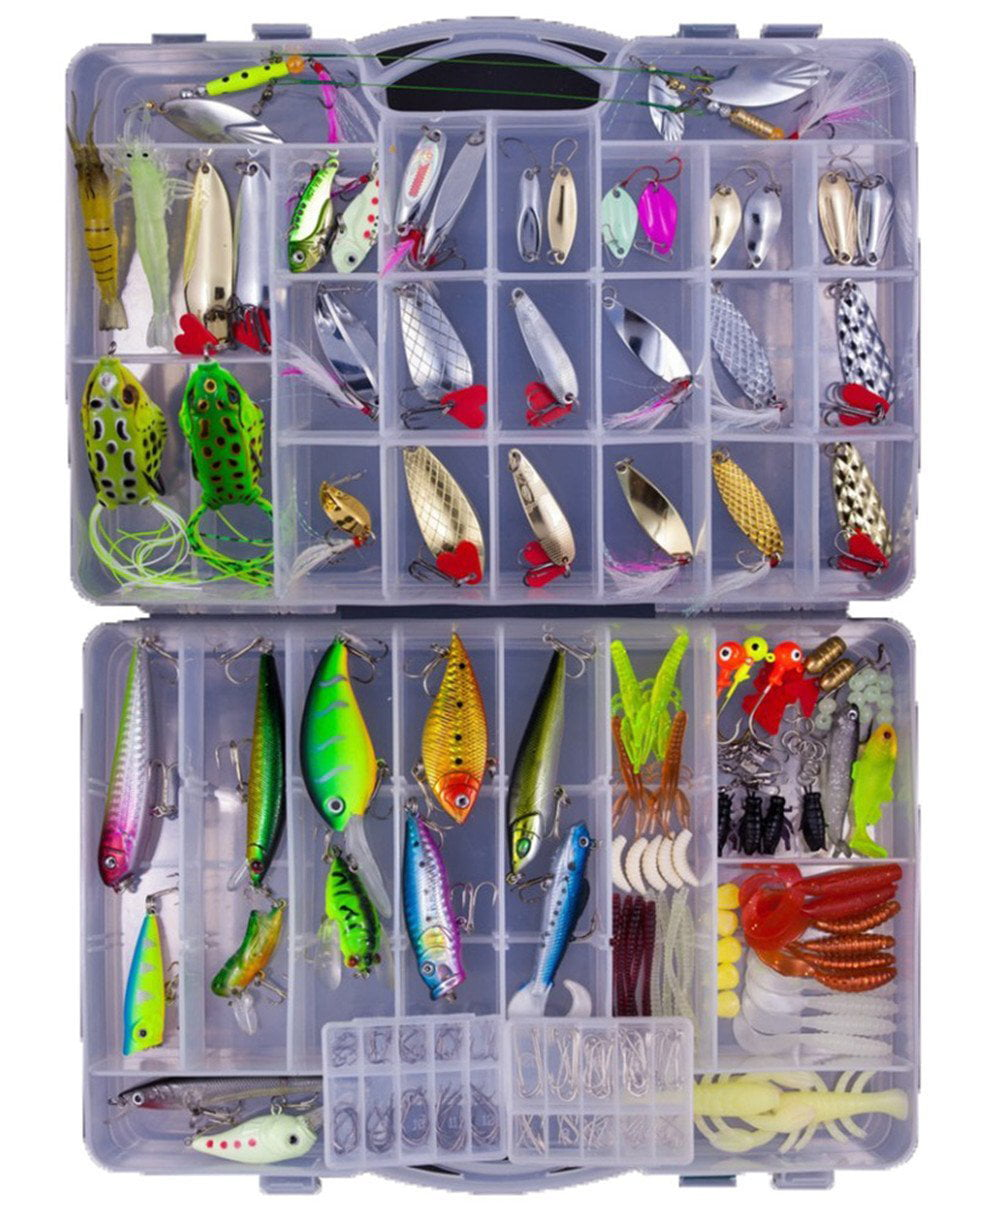 Click here to buy 250PCS BOX Fishing Lures Mixed Lots including Hard Lure Minnow Popper Crankbaits VIB Topwater Diving Floating Lures Soft Plastics Worm....